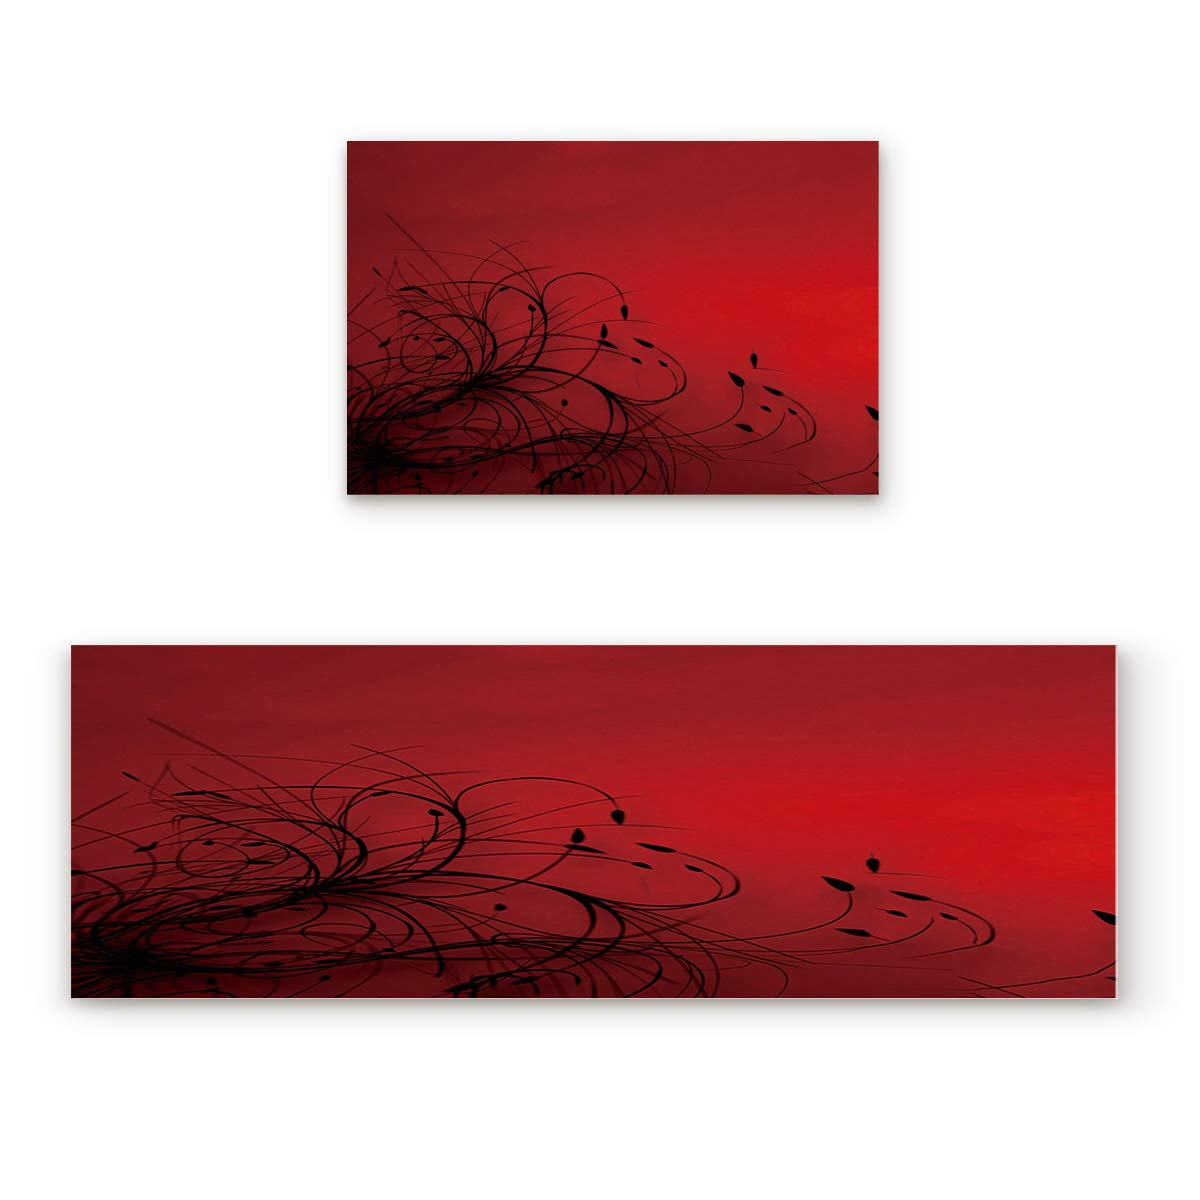 "Prime Leader 2 Piece Non-Slip Kitchen Mat Runner Rug Set Doormat Red and Black Abstract Flower Door Mats Rubber Backing Carpet Indoor Floor Mat (15.7"" x 23.6""+15.7"" x 47.2"")"